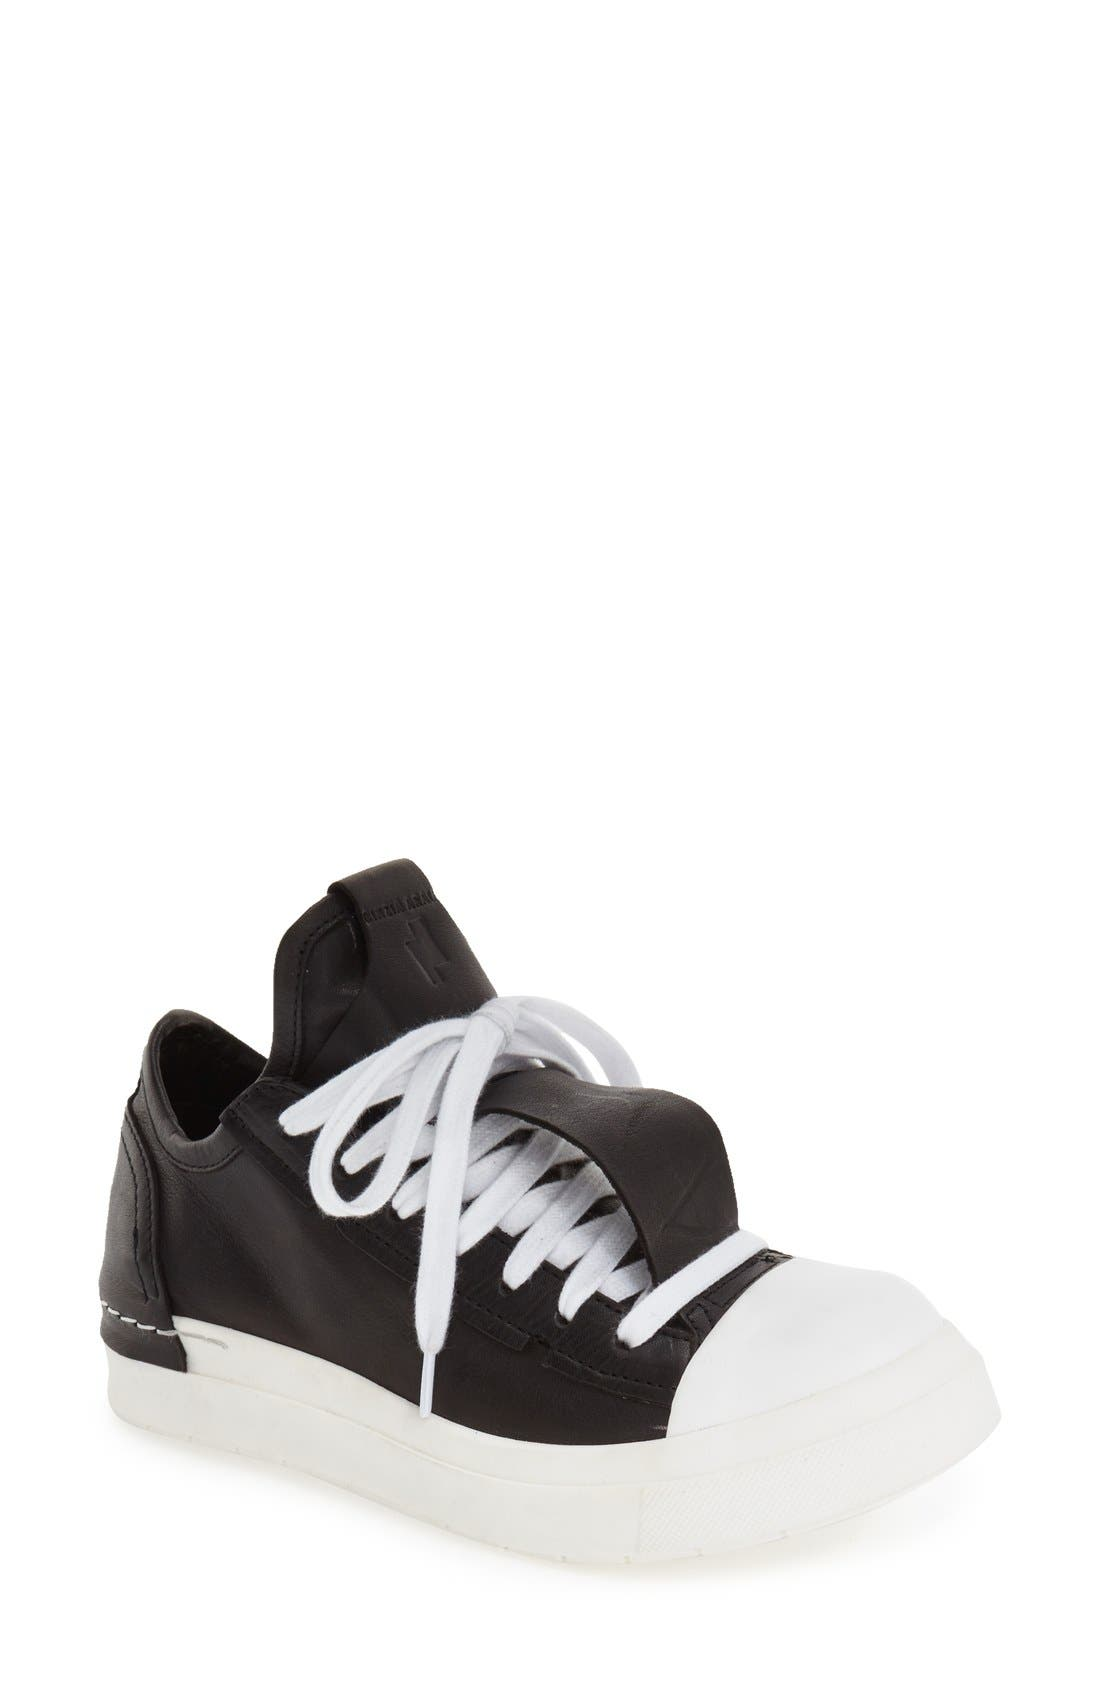 Alternate Image 1 Selected - CA by CINZIA ARAIA Lace-Up Leather Sneaker (Women)